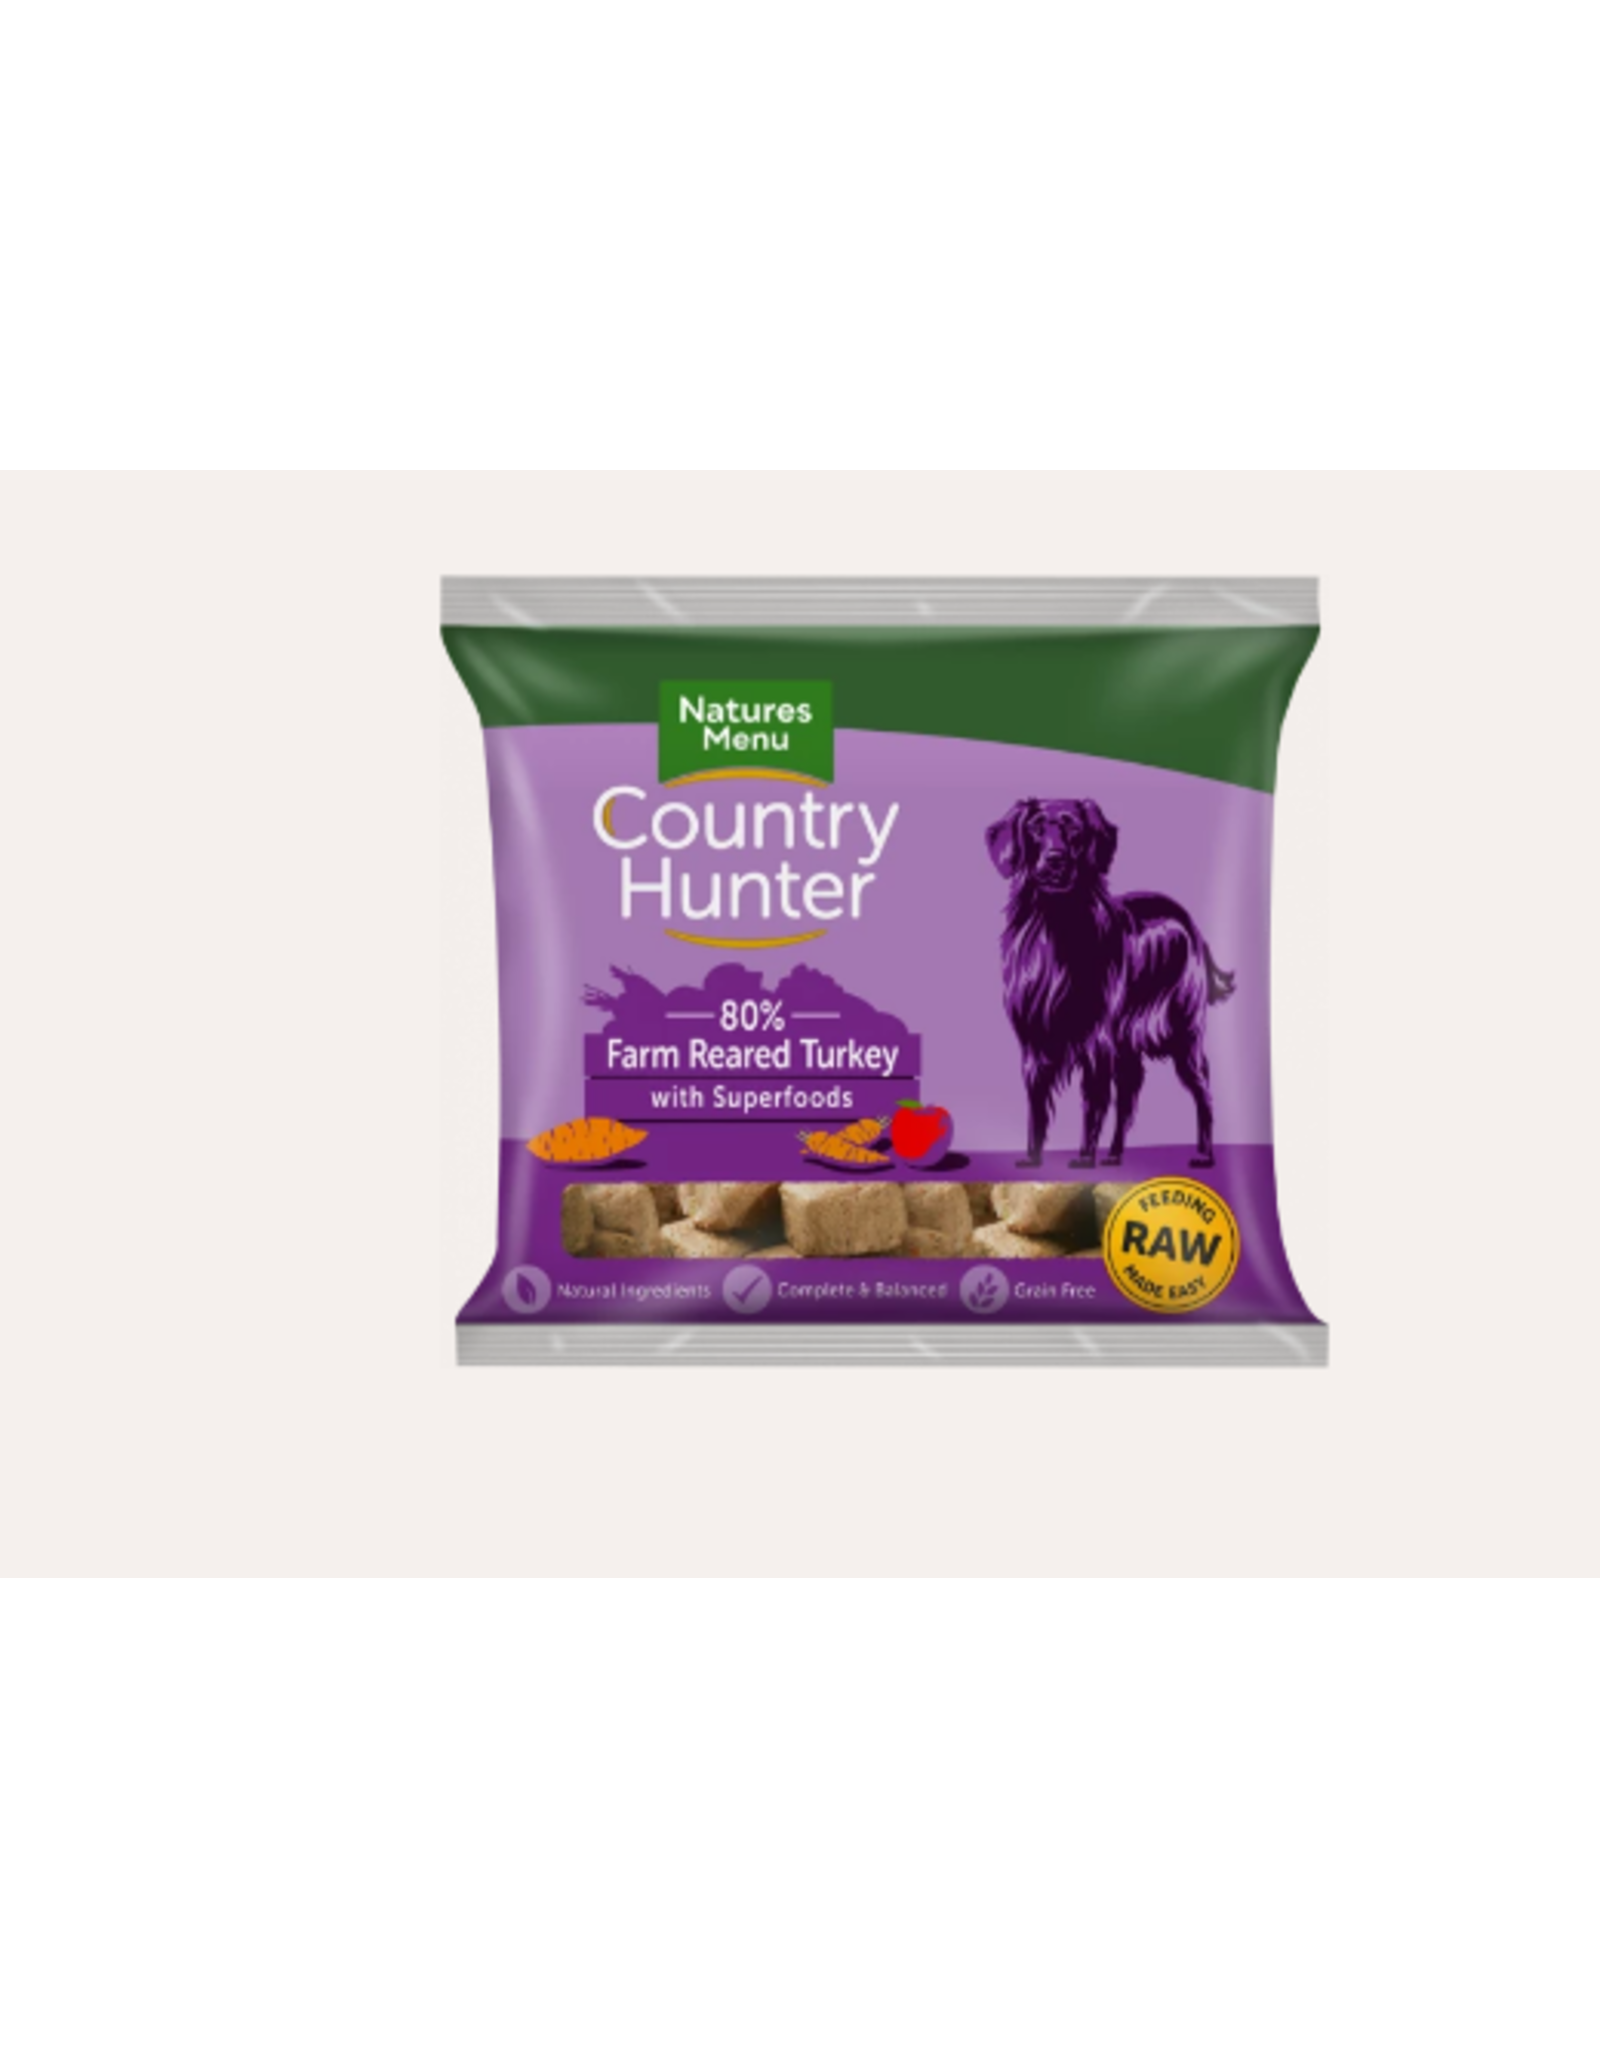 Natures Menu Country Hunter Nuggets Farm Reared Turkey 1kg